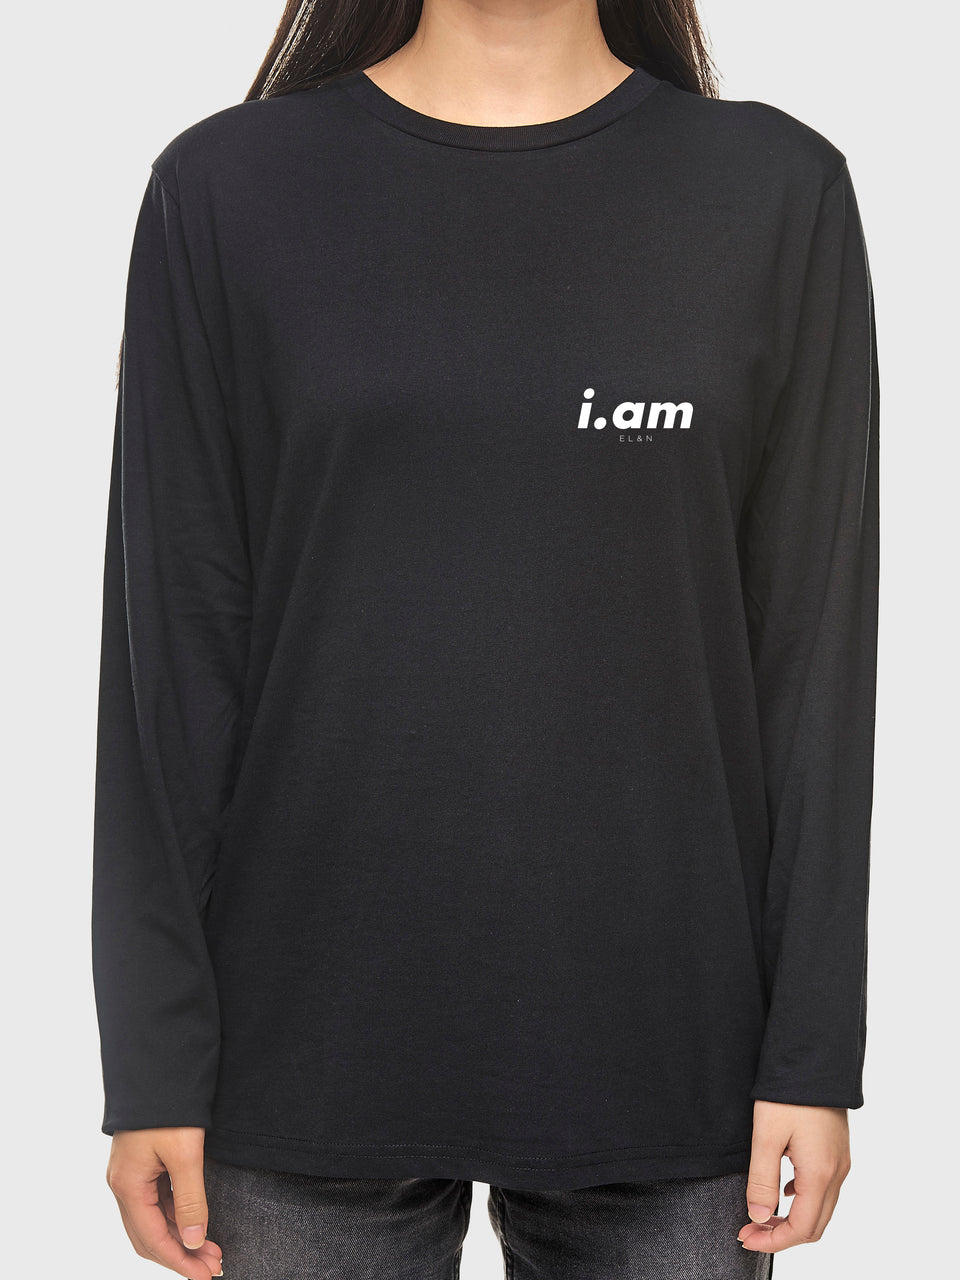 A good story - Black - Unisex long sleeve T